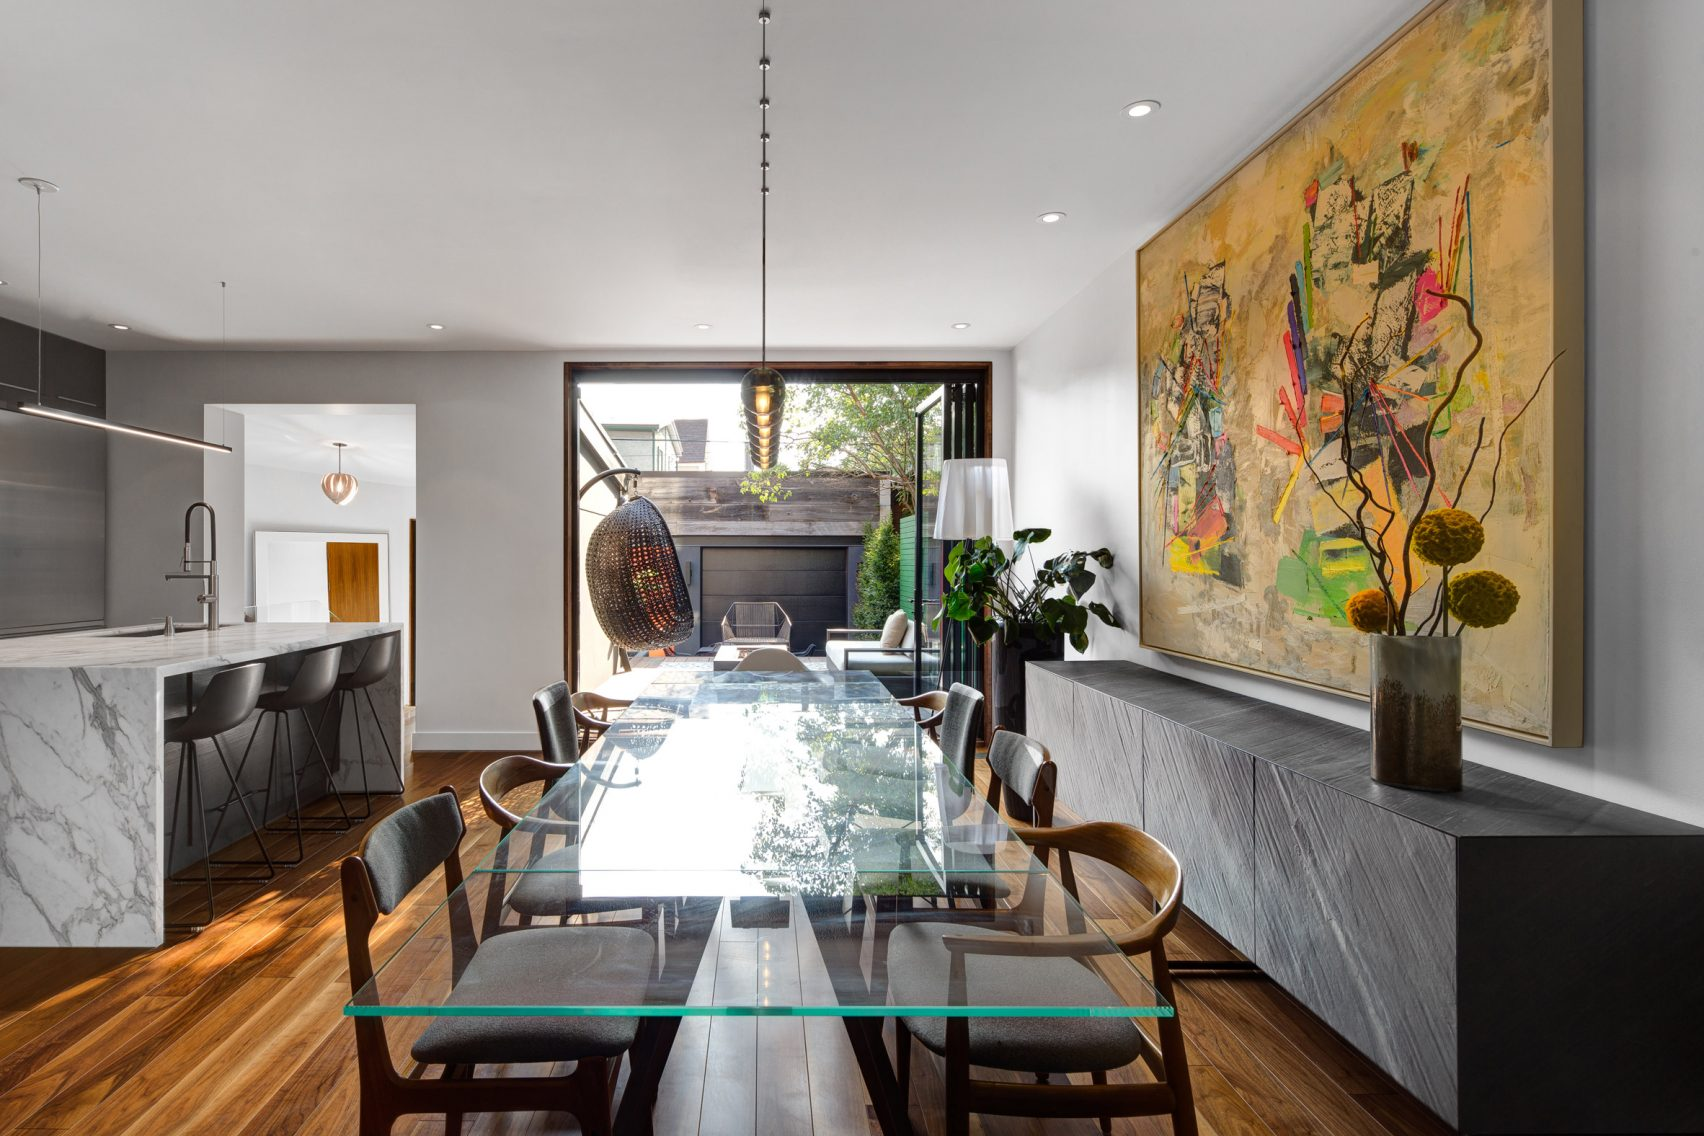 Refresh Your Contemporary Light Fixtures With This Stunning Project! 6